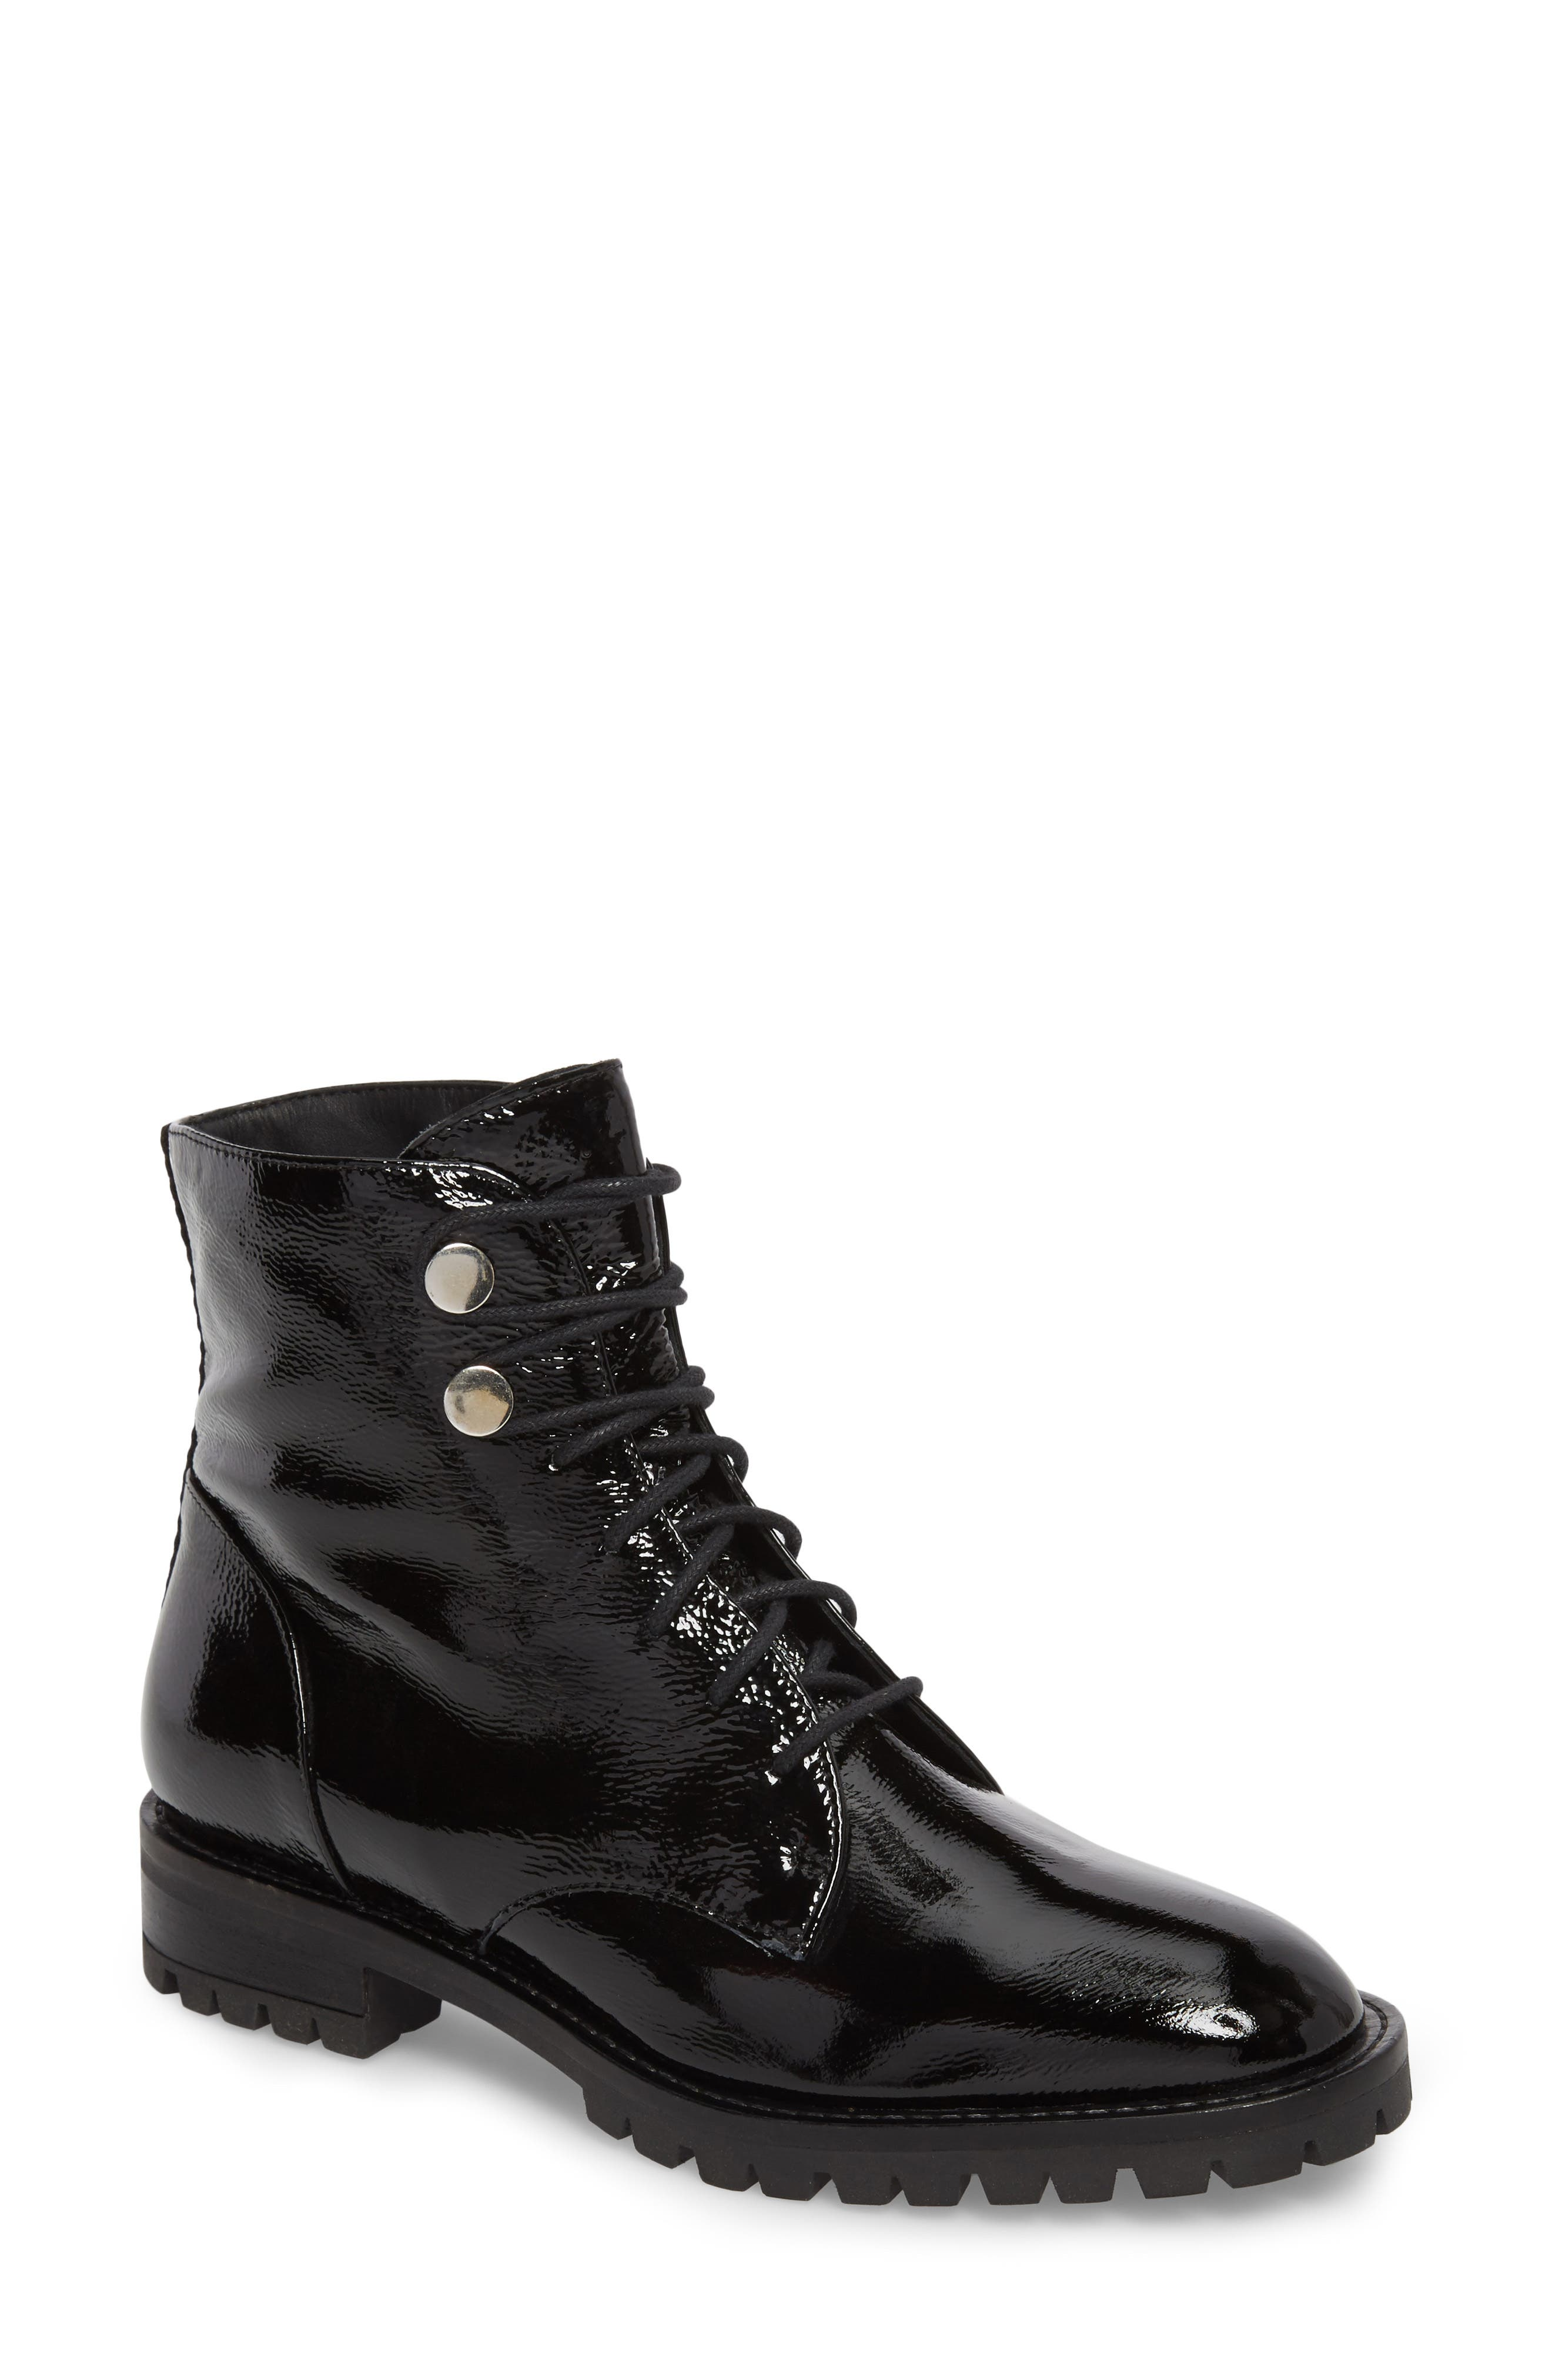 Main Image - Kenneth Cole New York Francesca Lace-Up Boot (Women)